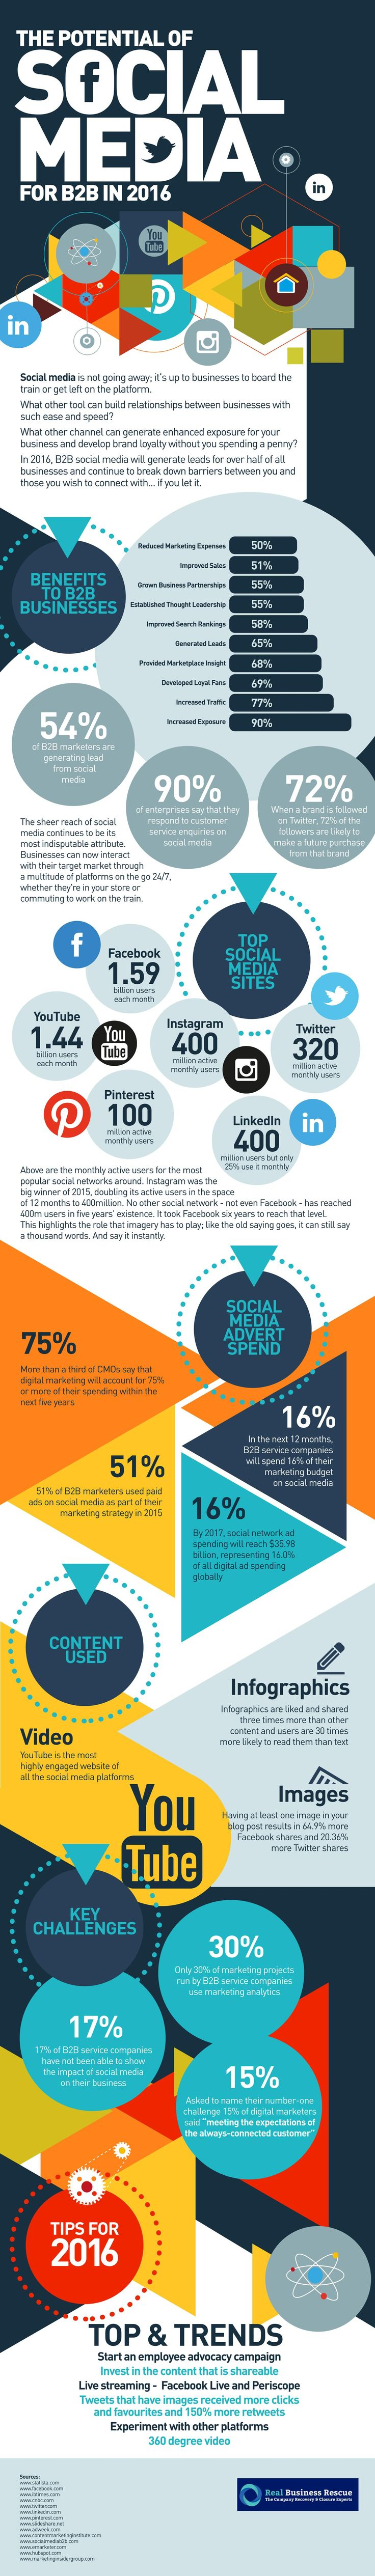 The Potential of #SocialMedia in 2016 | Infographic from @RealBizRescue | #SMM | by Keith Tully for Real Business Rescue